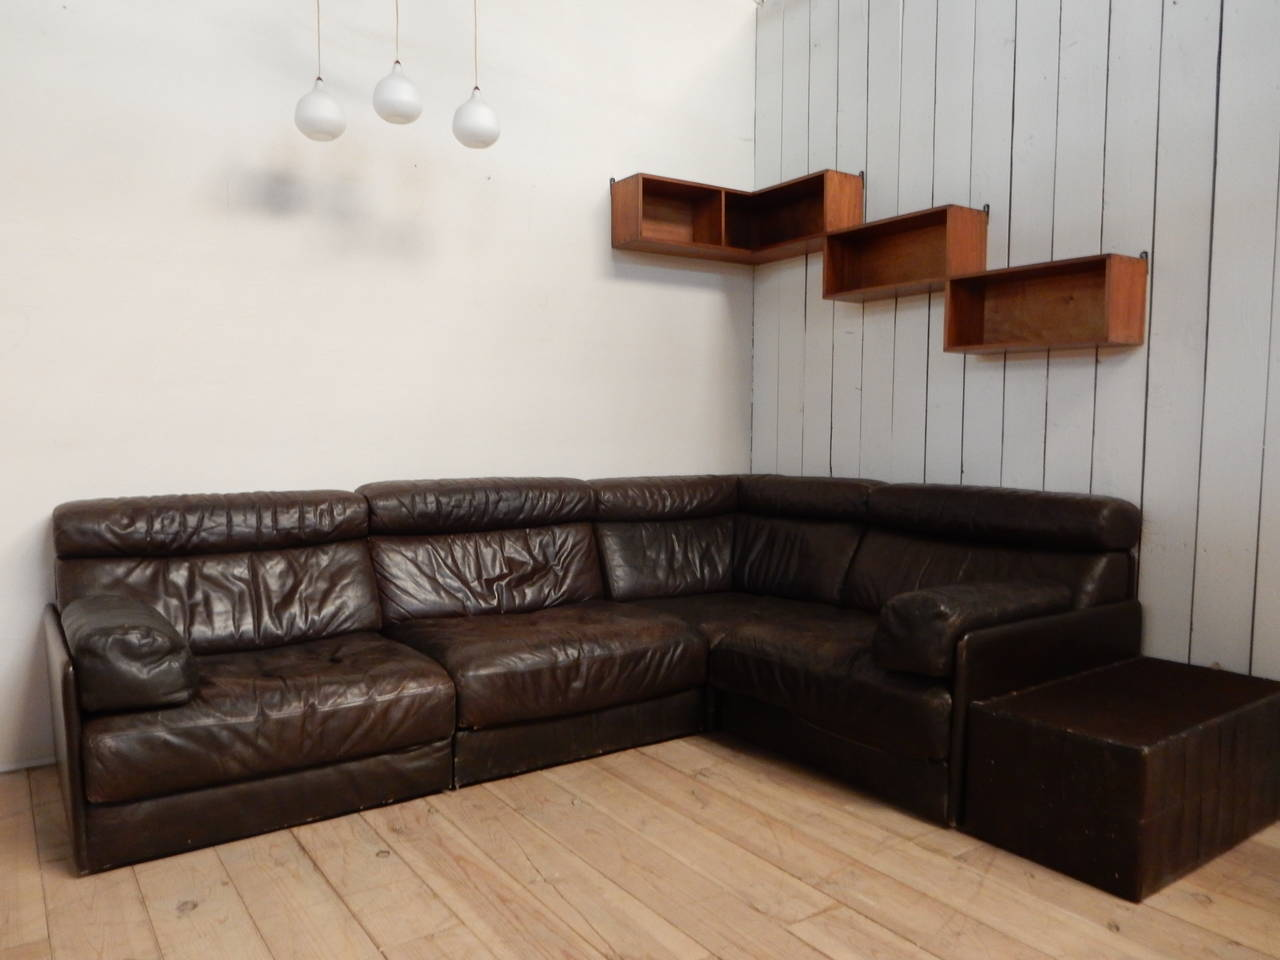 1970 de sede module leather sofa at 1stdibs. Black Bedroom Furniture Sets. Home Design Ideas